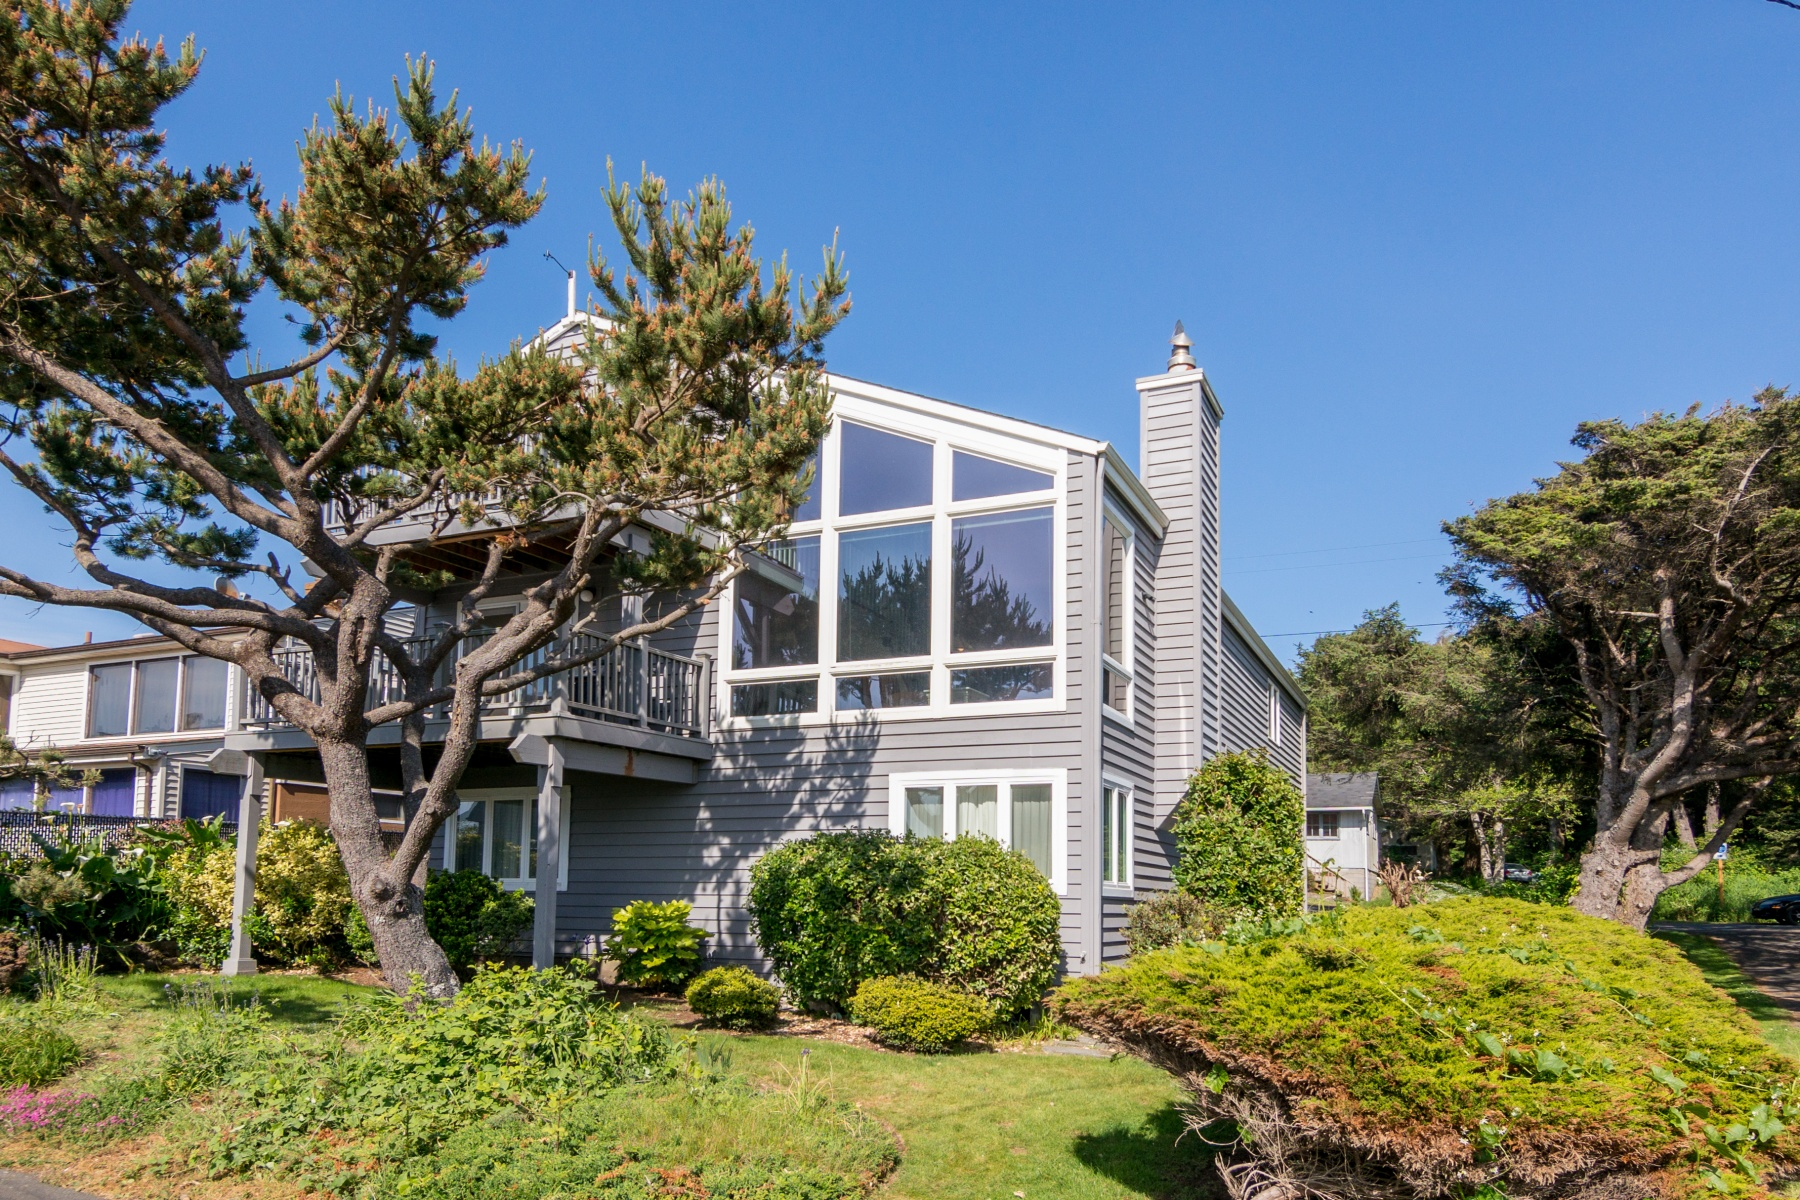 3888 Pacific Ave, Cannon Beach, OR 97110